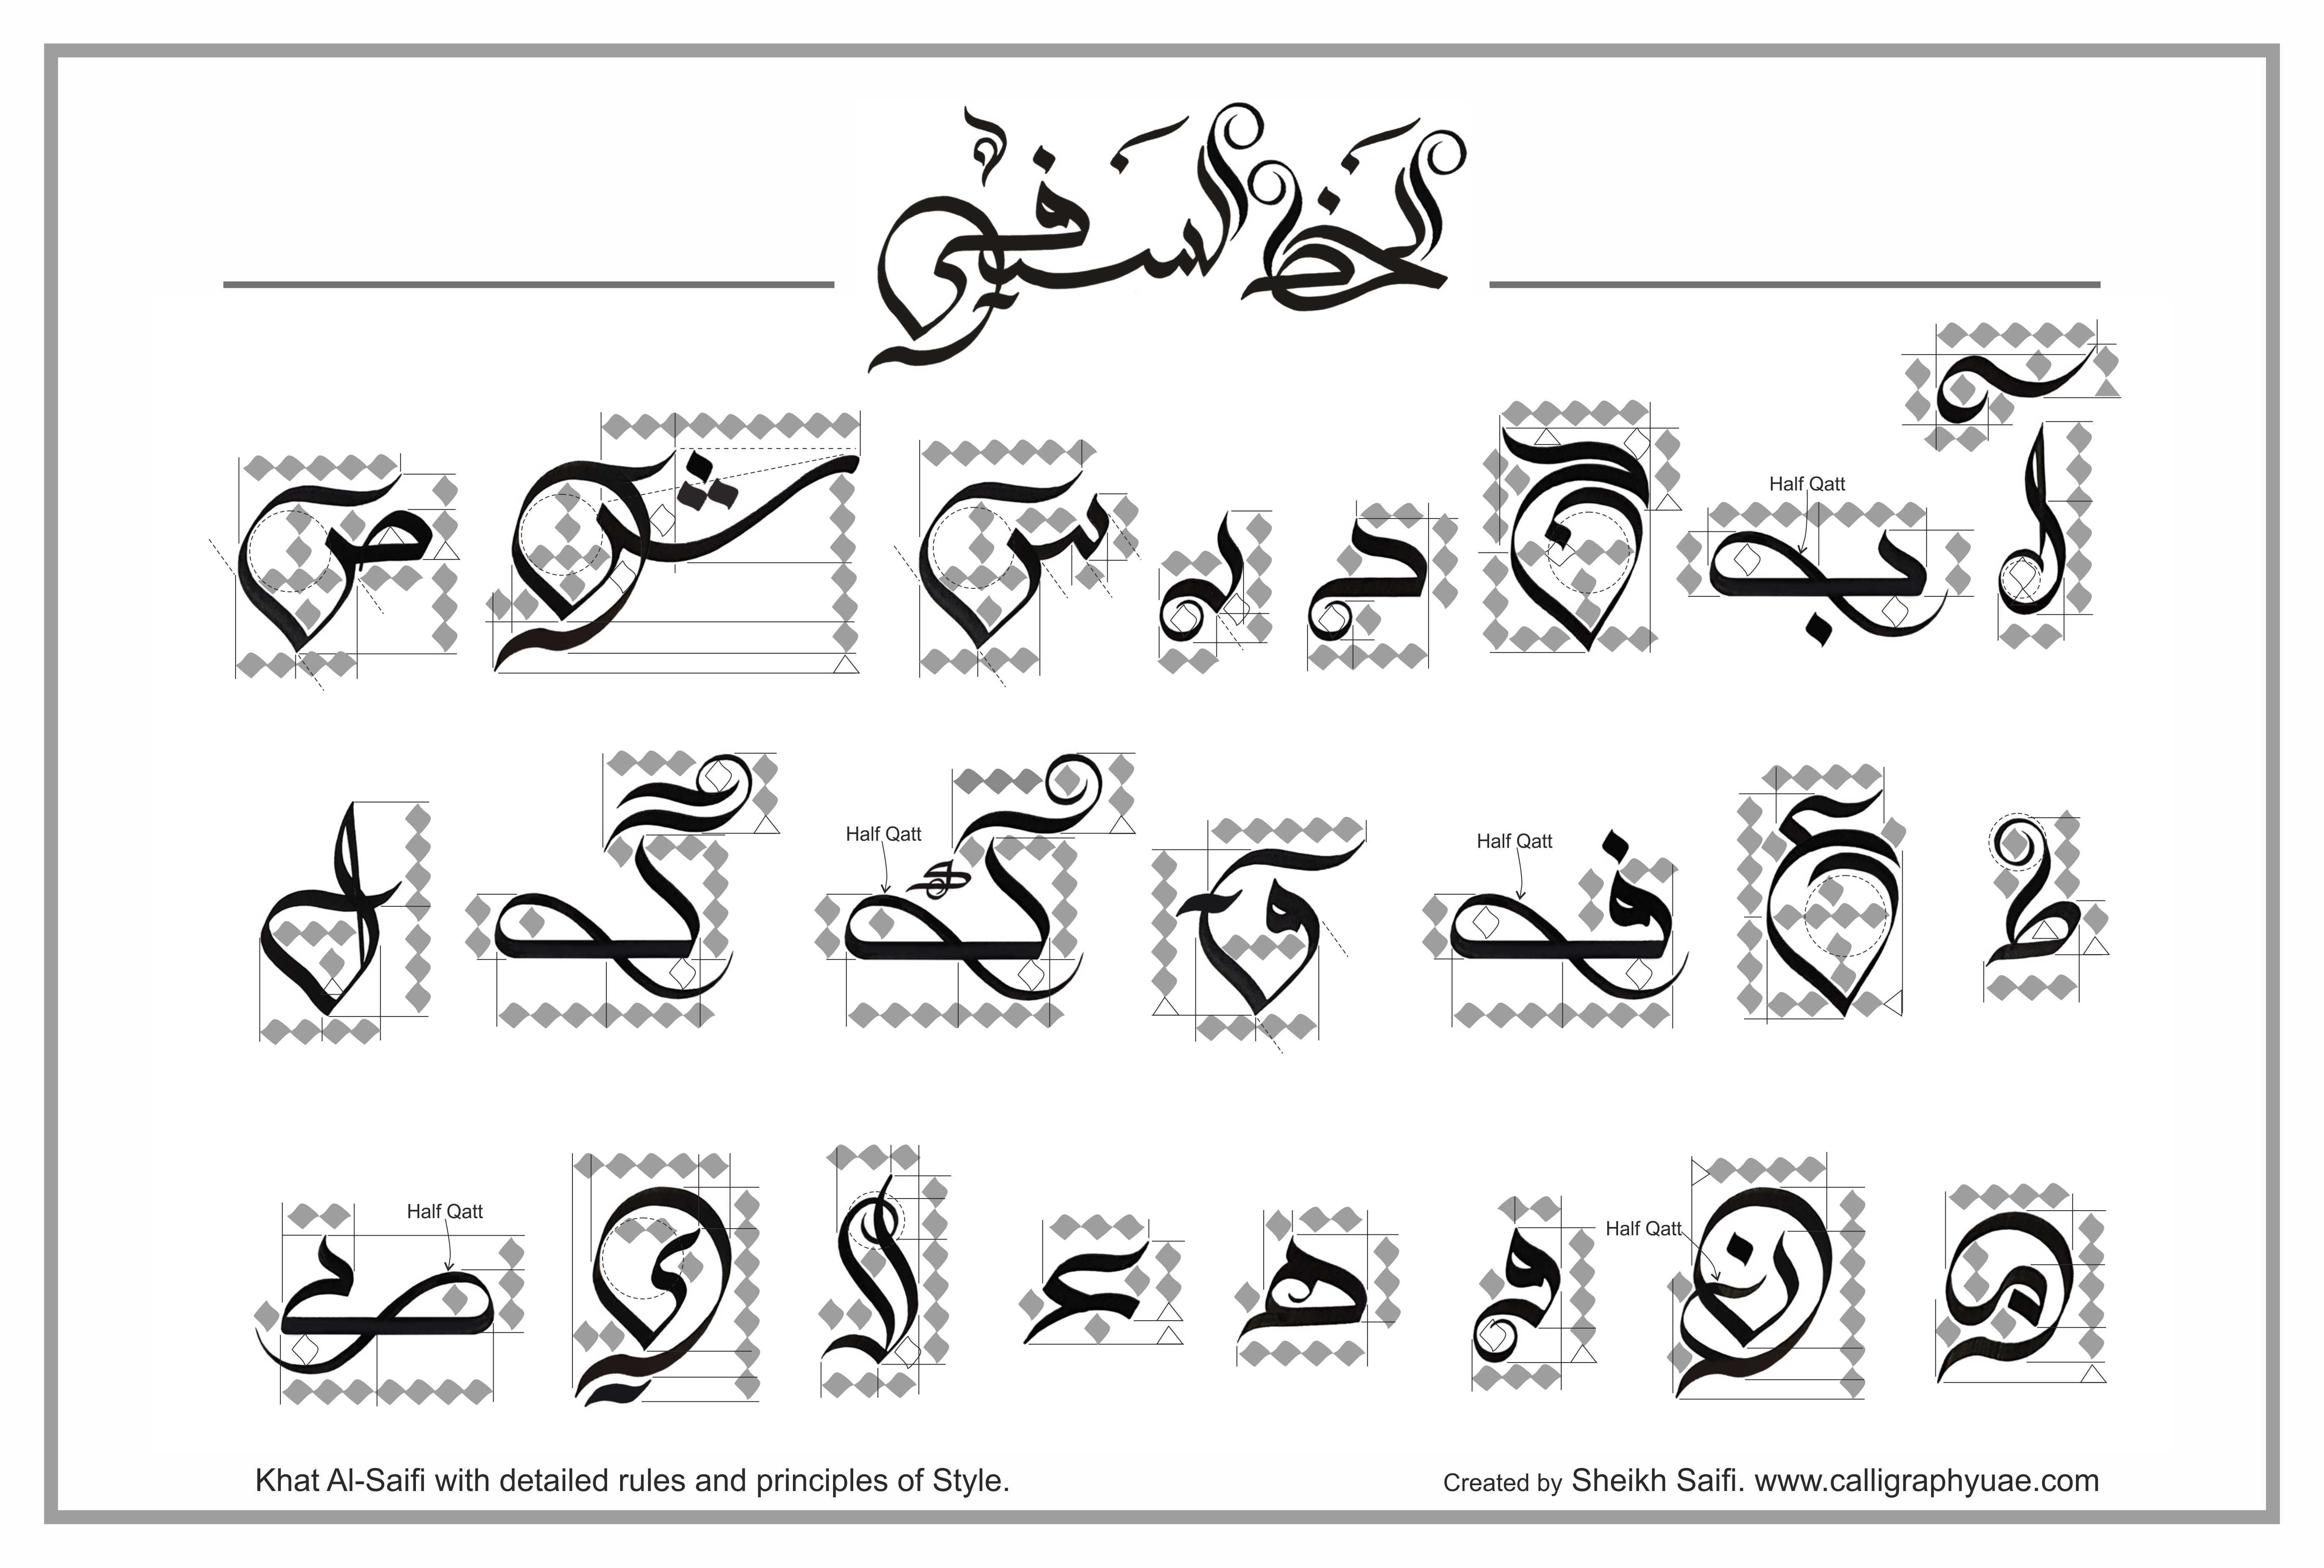 Urdu Calligraphy Font Free Download Modern Arabic Calligraphy Font Khat Al Saifi With Detailed Rules